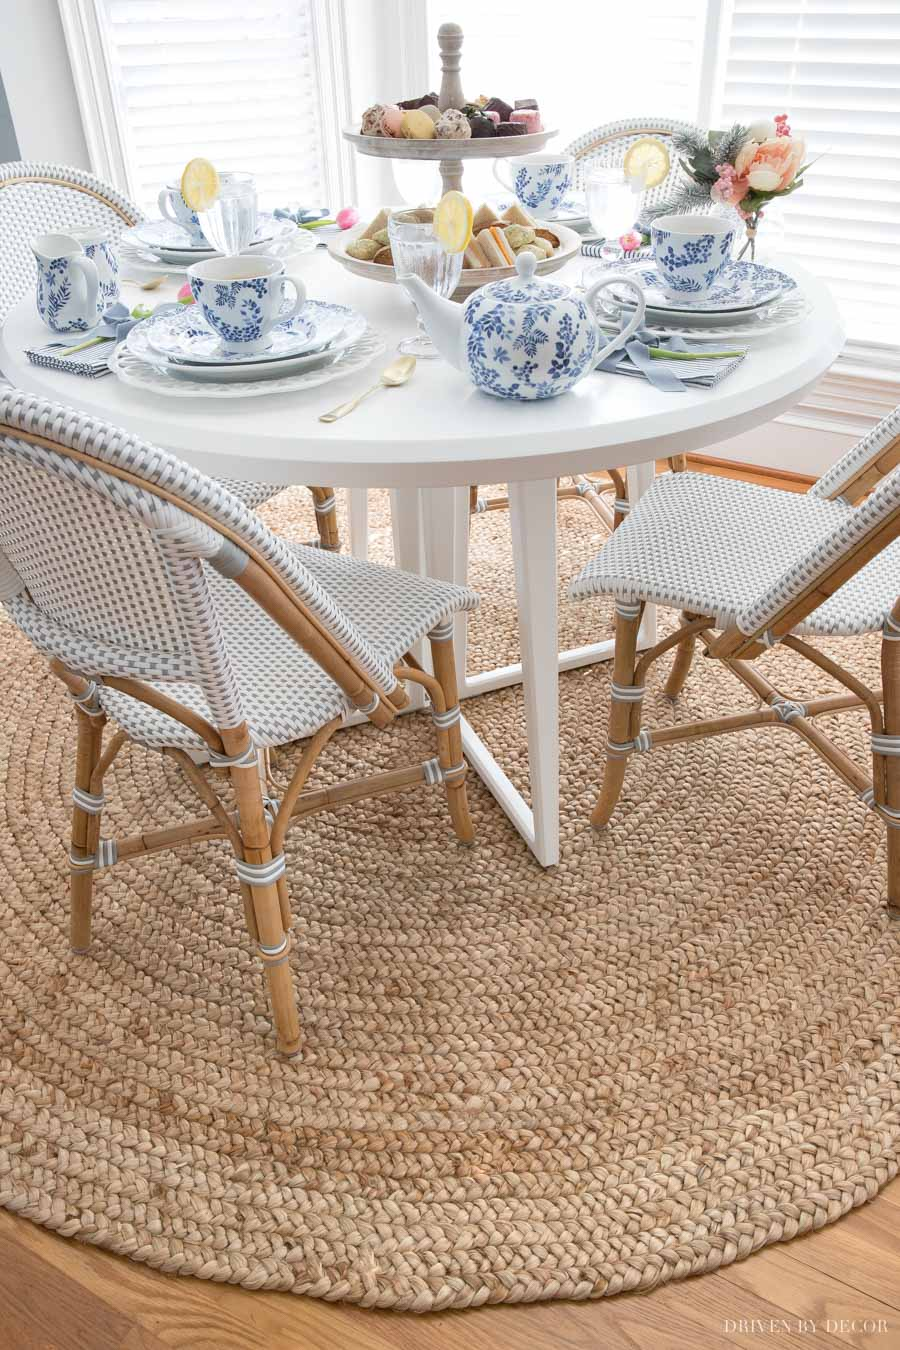 Breakfast nook with beautiful round braided jute rug